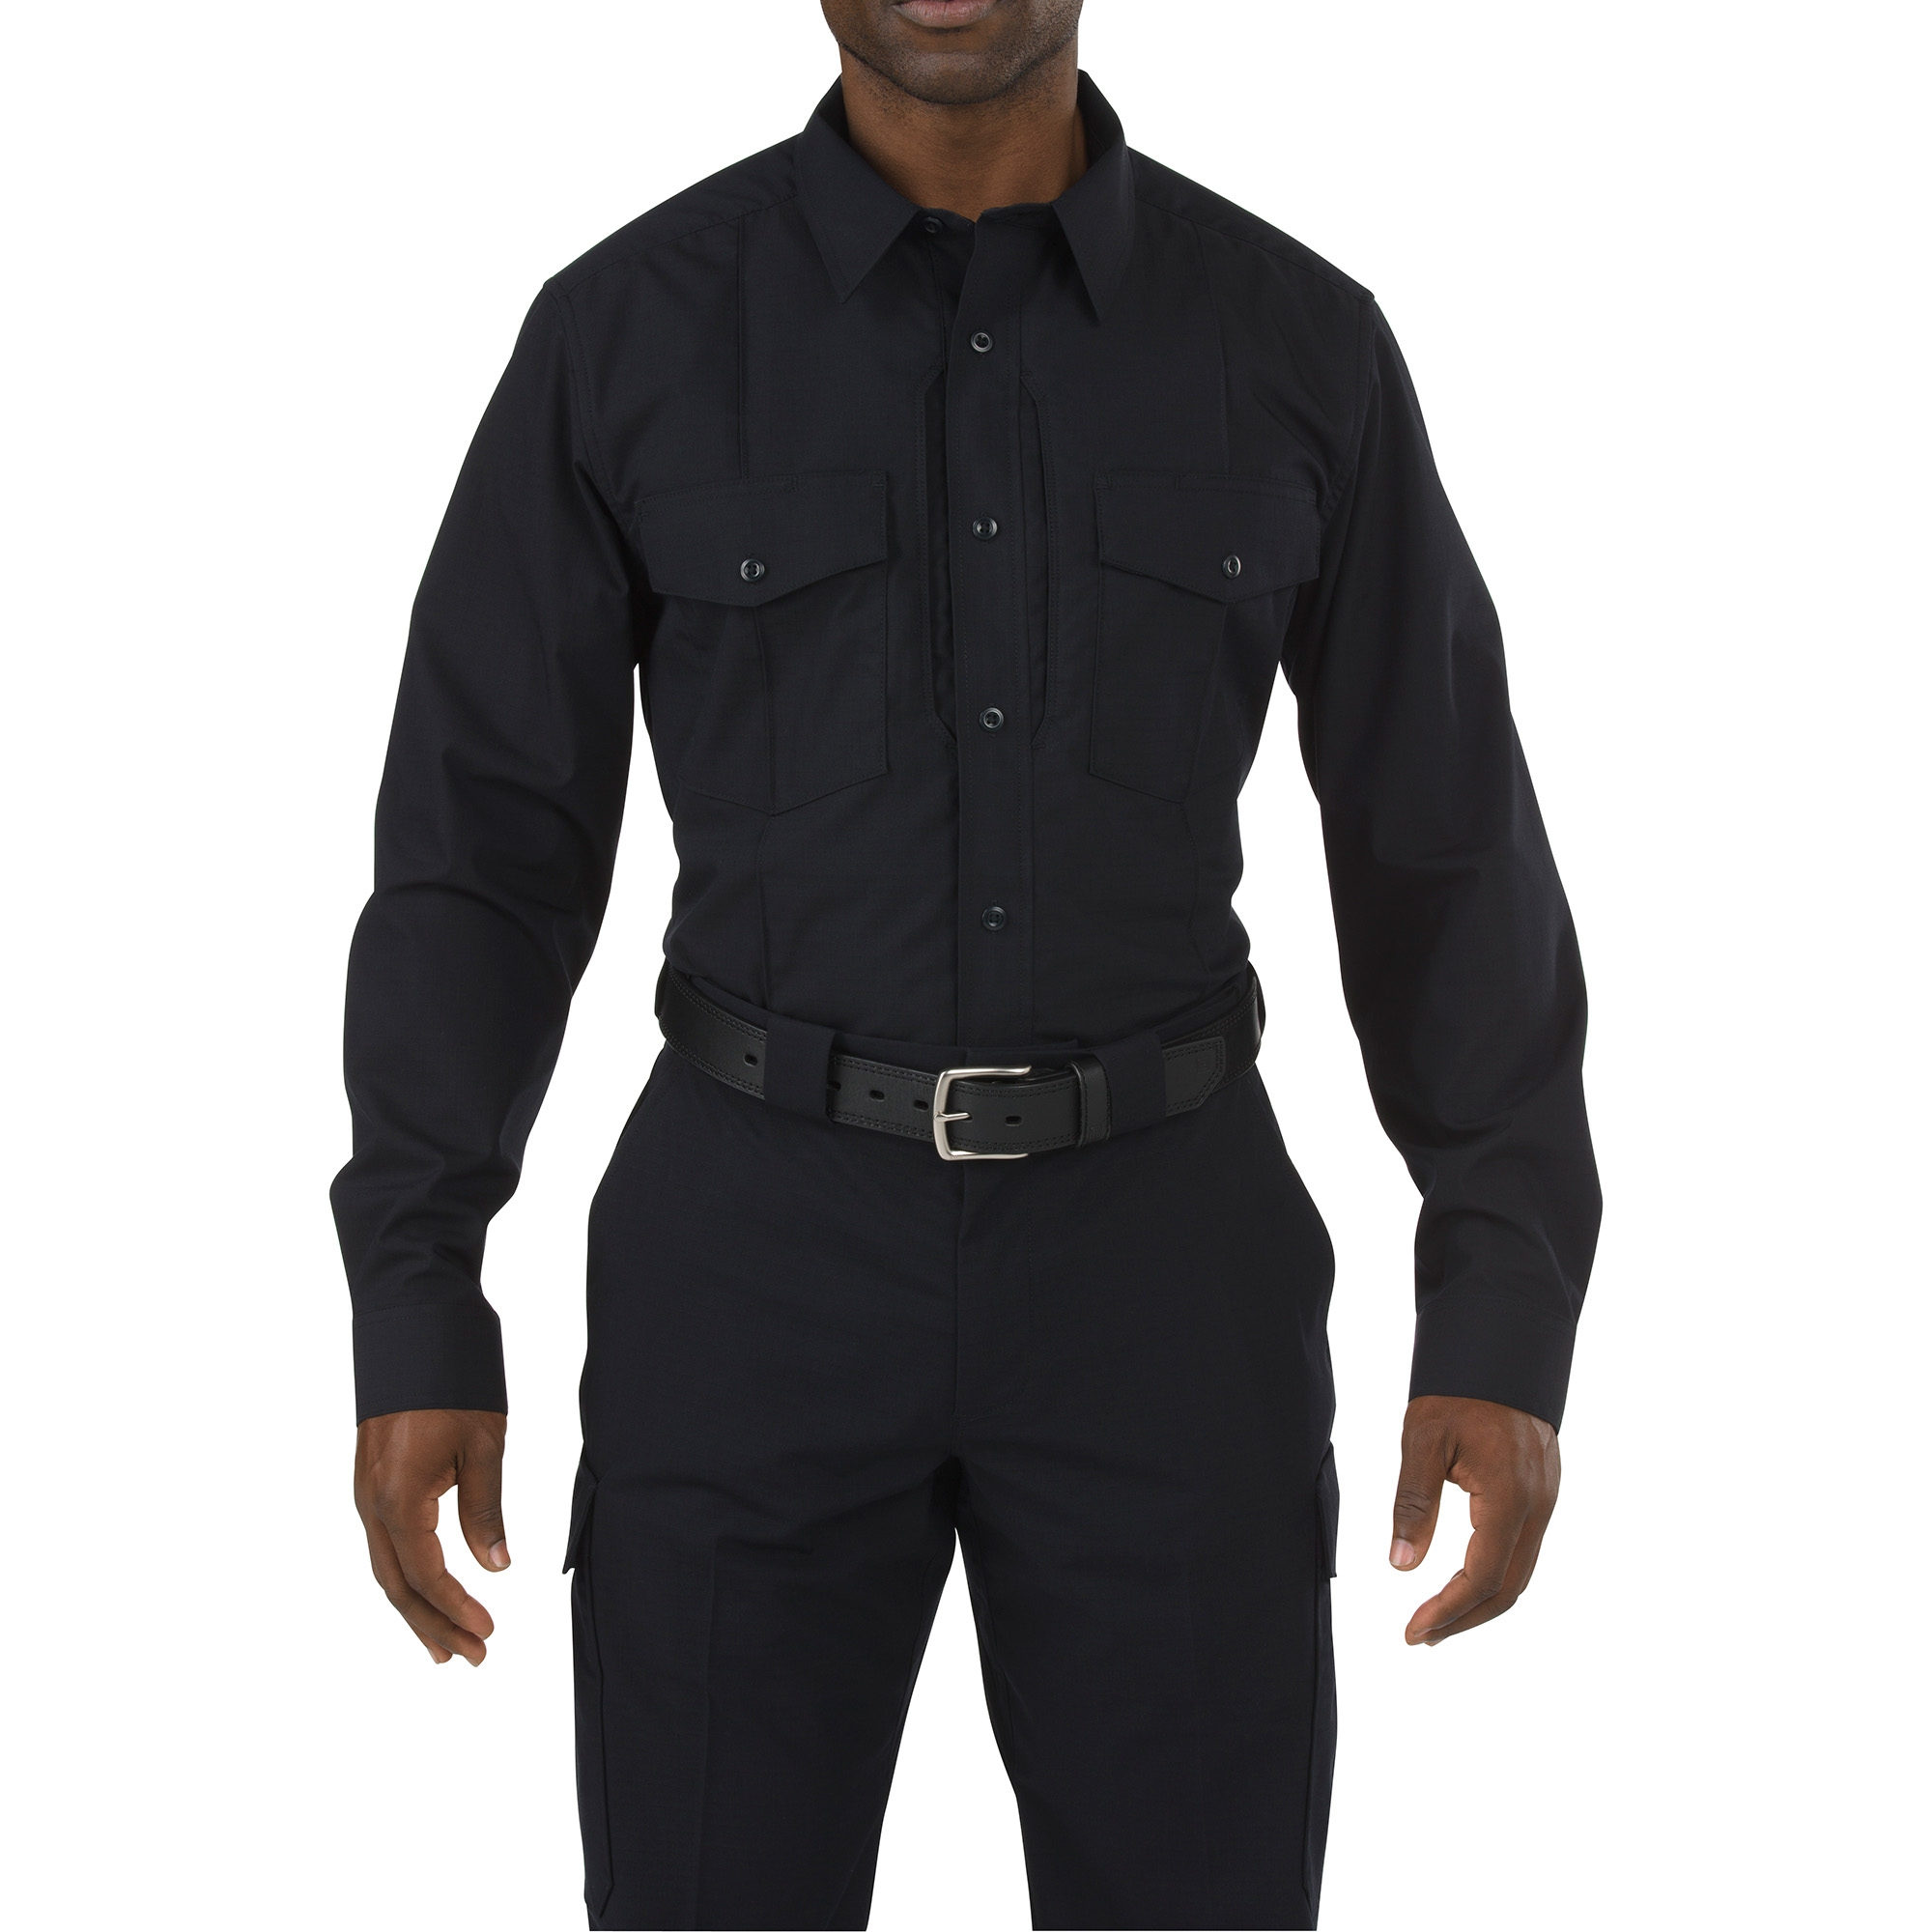 5.11 Stryke™ Class-B Pdu® Long Sleeve Shirt From 5.11 Tactical-511